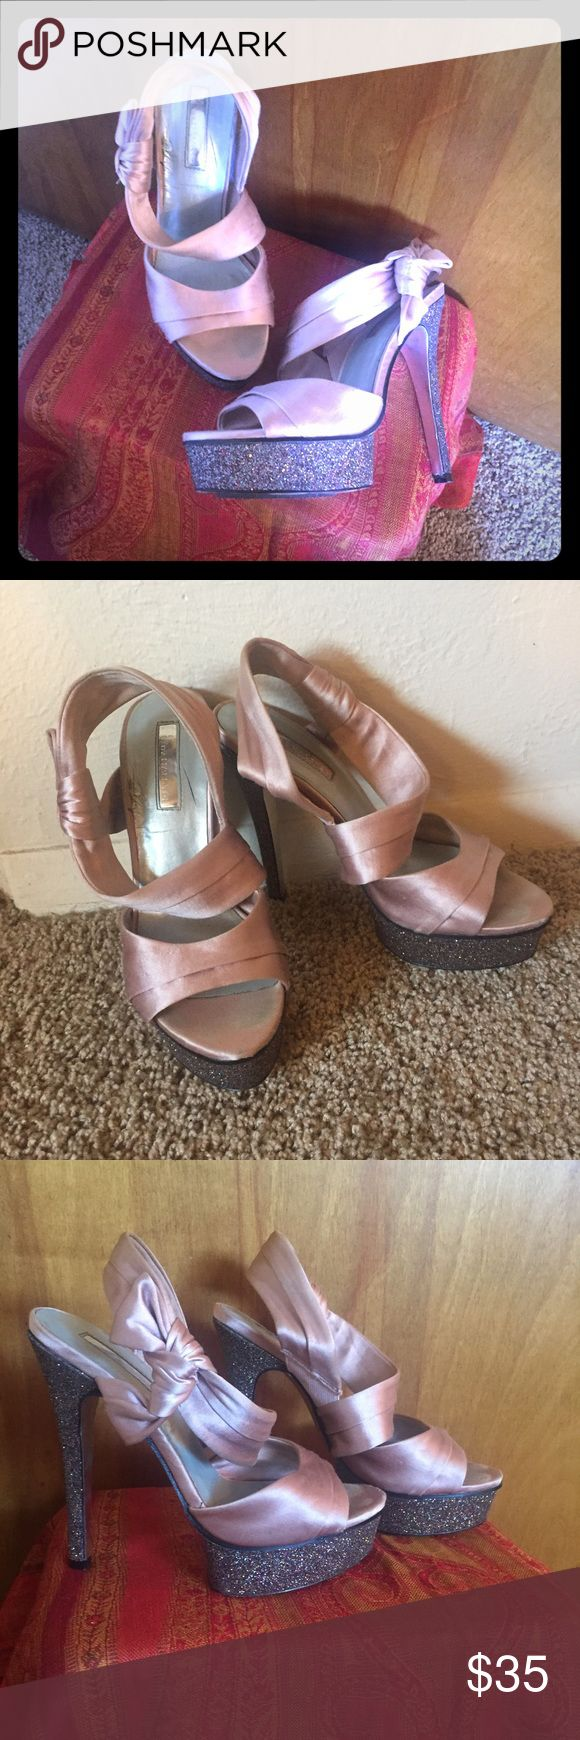 Sparkly light pink silk platforms size 6.5 Sparkly. High heel. Size 6.5. Light pink silk.  Dolls kill. Unif. Betsy Johnson. Omighty. Little black diamond. Shoes Heels